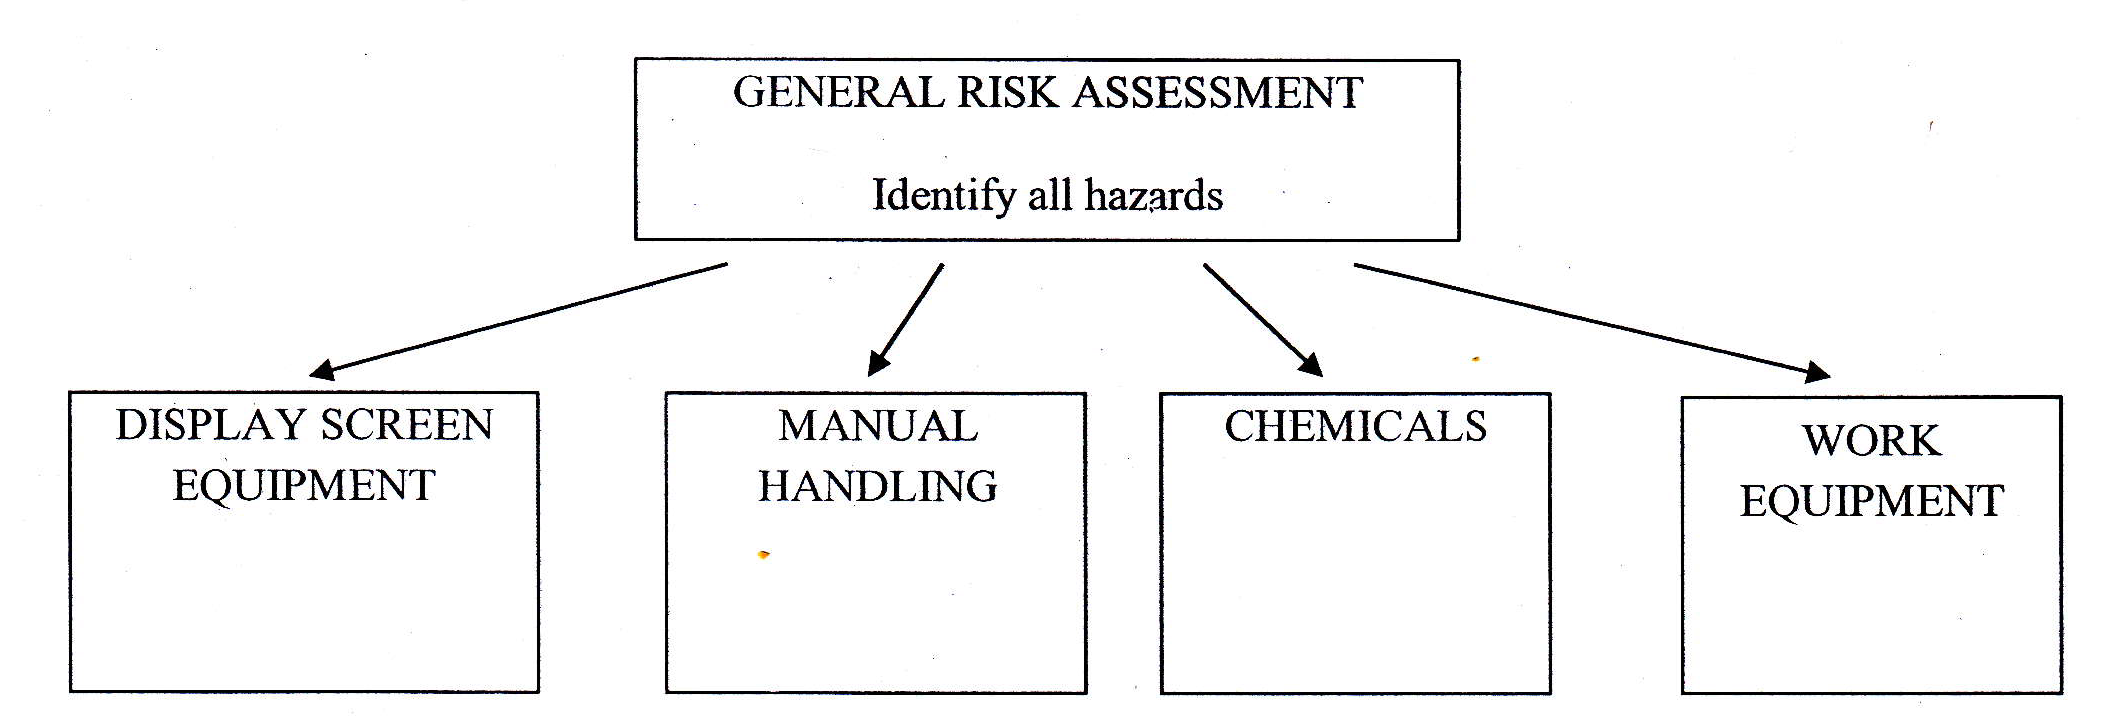 assessing and controlling manual handling risk